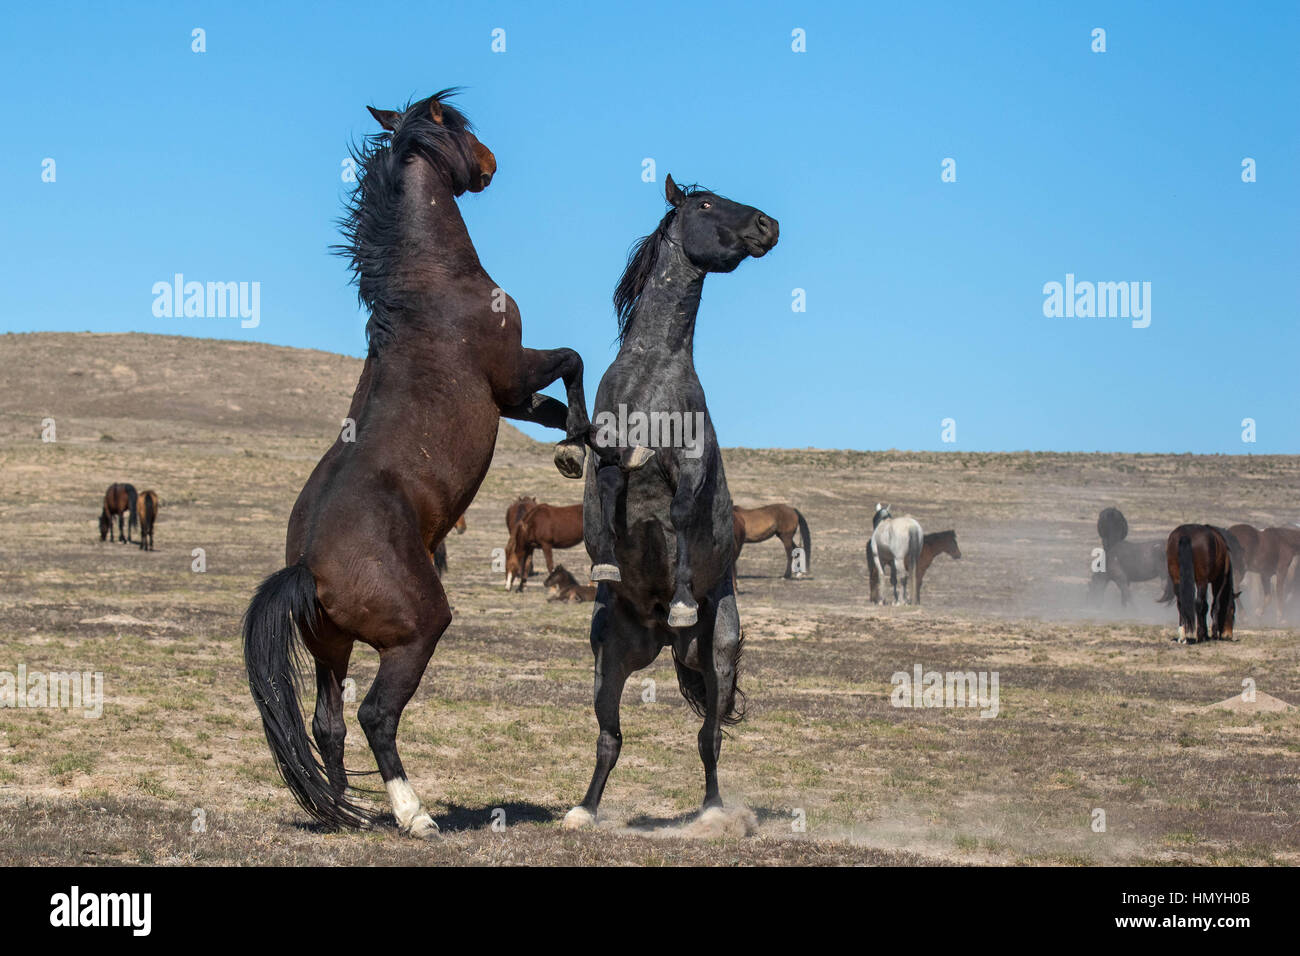 Stock Photo : Two Wild Mustangs Fighting (Equus ferus caballus) West Desert, Utah, USA, North America - Stock Image